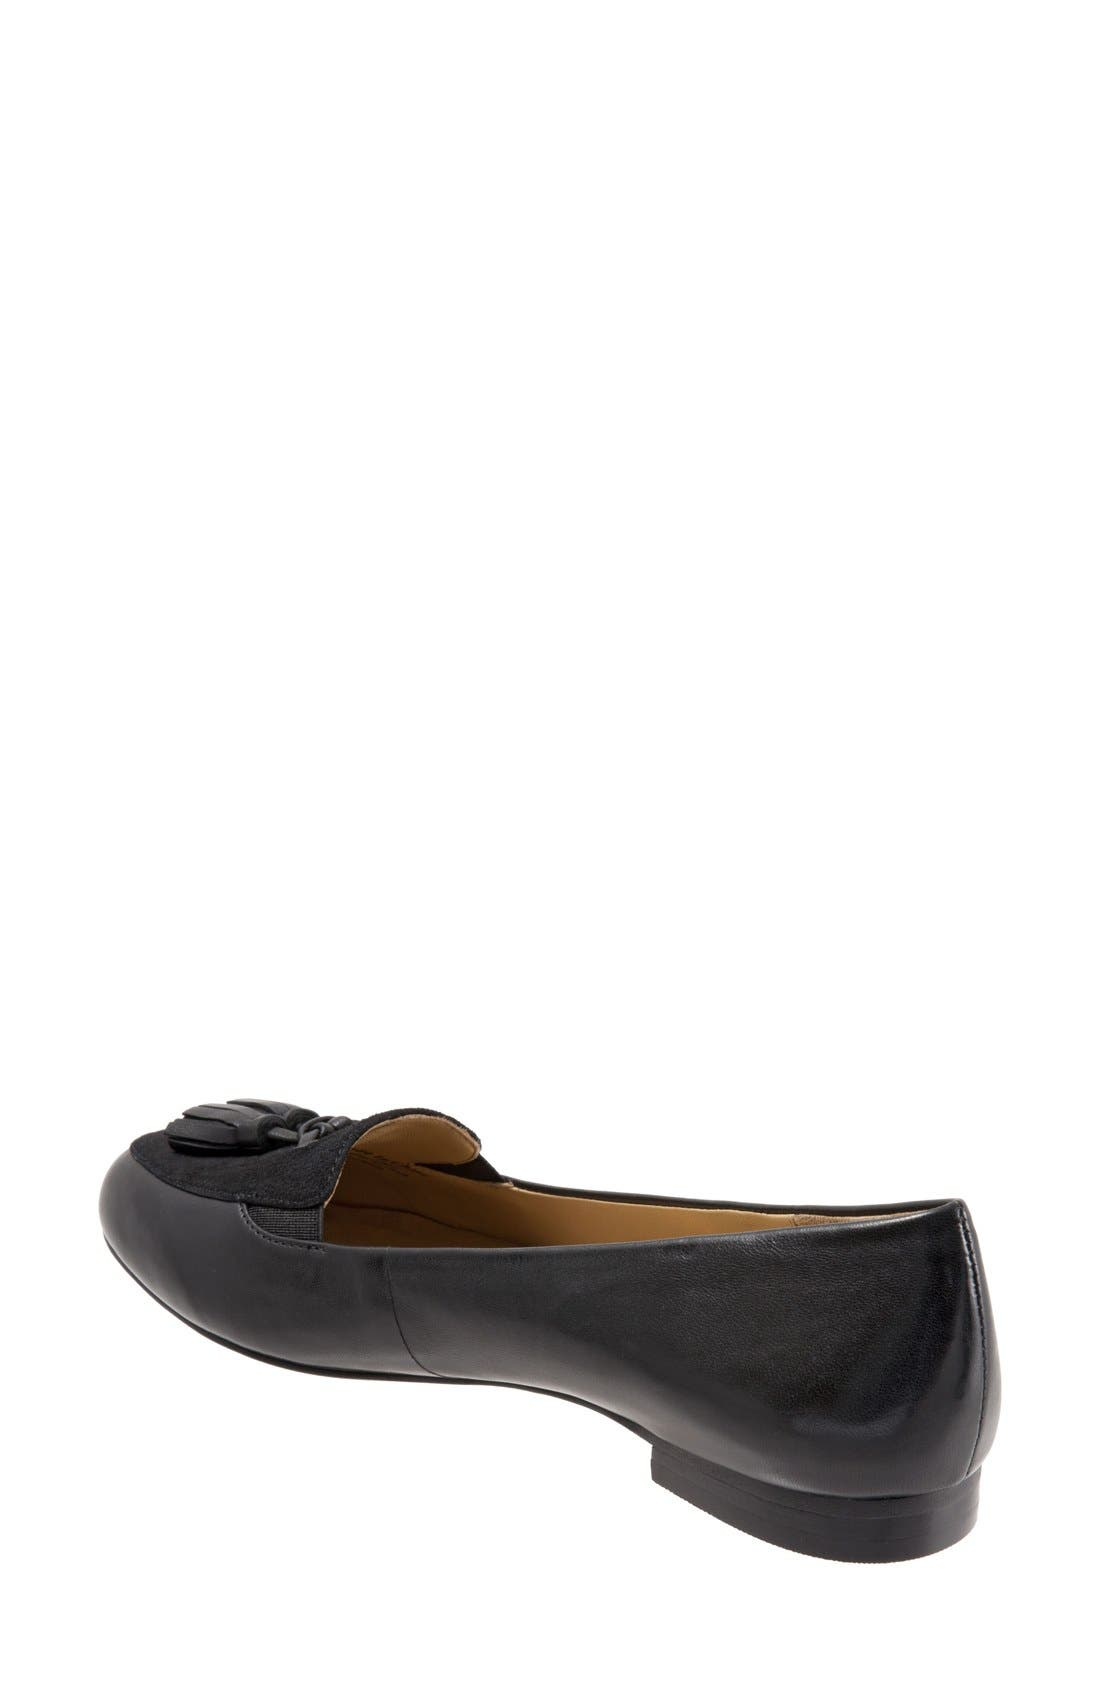 Alternate Image 2  - Trotters 'Caroline' Tassel Loafer (Women)